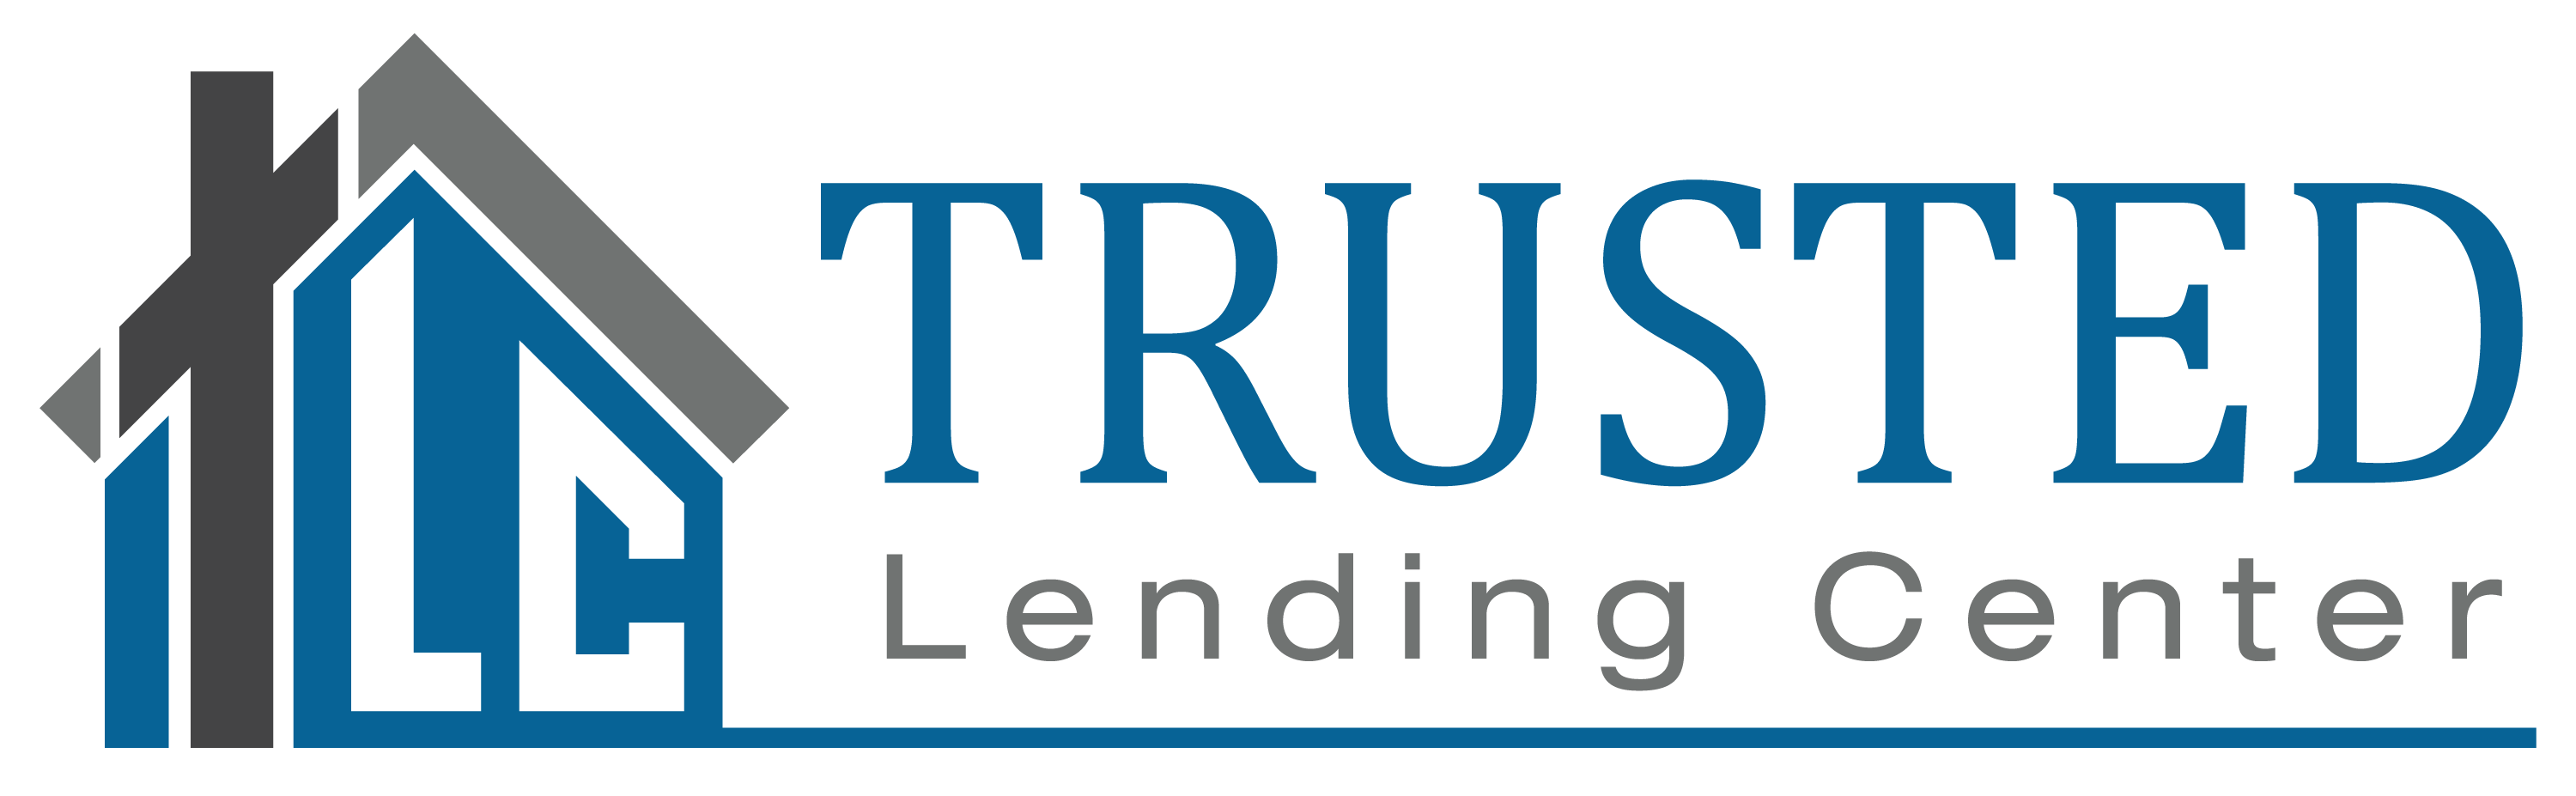 Trusted Lending Center Refinance | Get Low Mortgage Rates